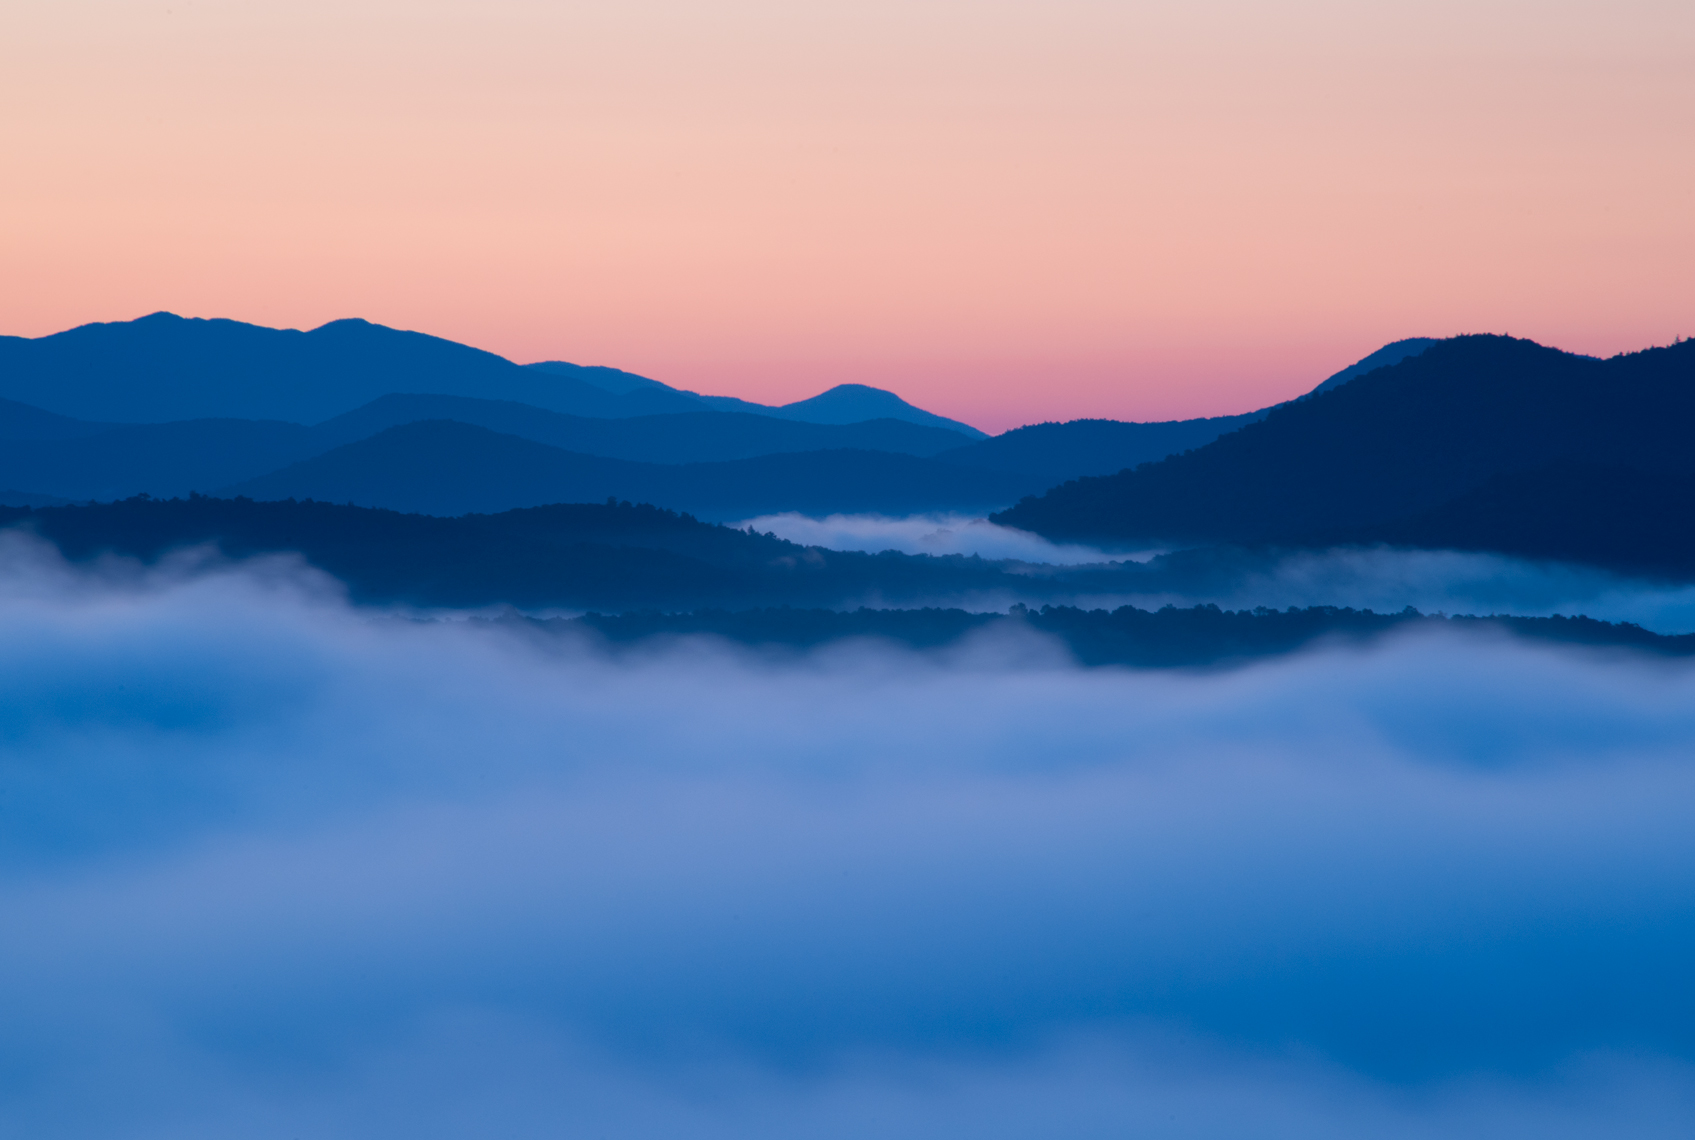 Fog in the Valleys, Adirondack Mountains, New York State